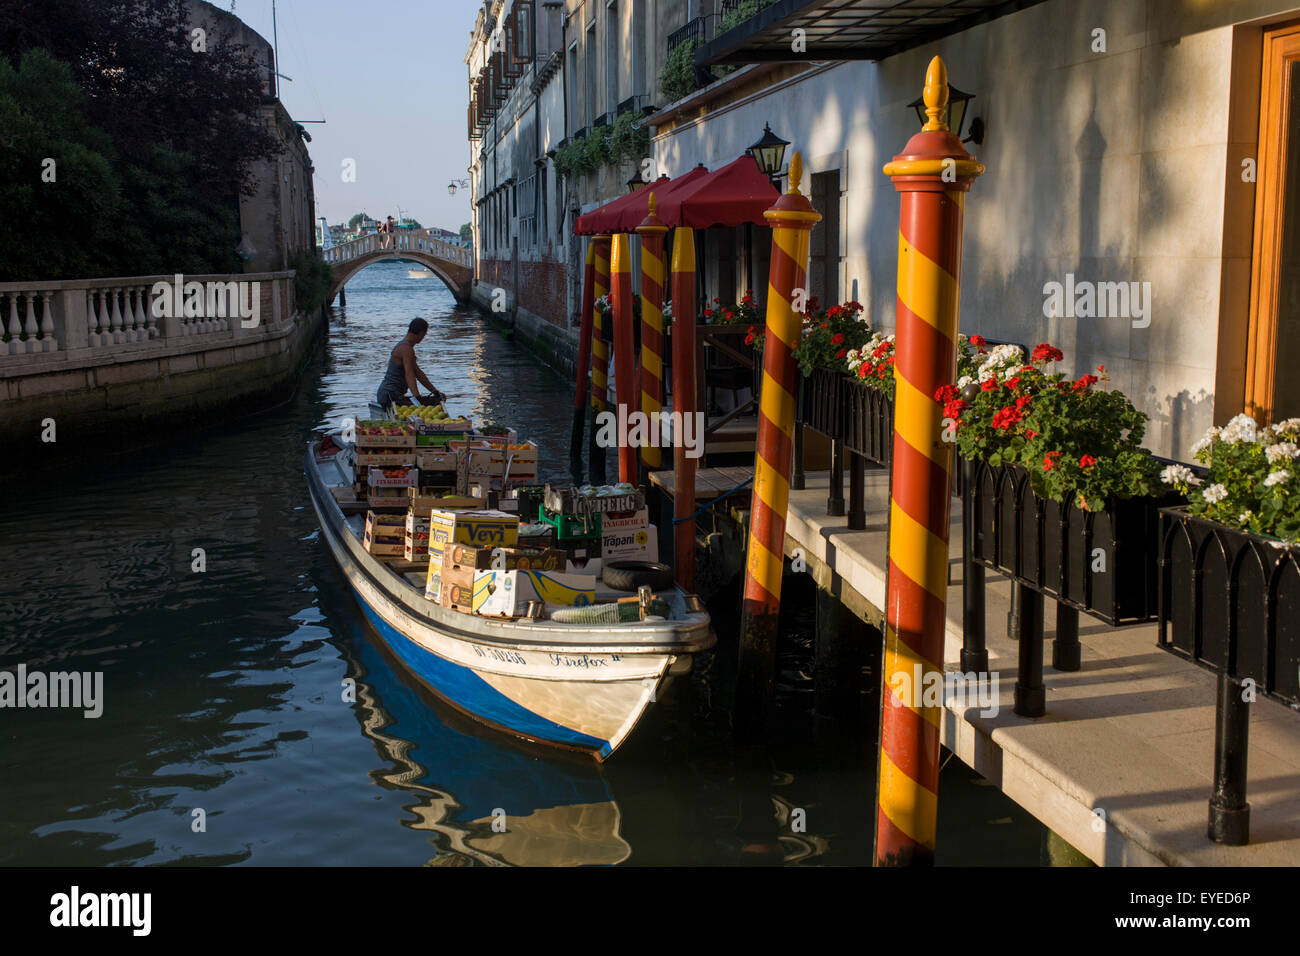 Delivery man reverses back from jetty, back on to Grand Canal after dropping off supplies in Venice, Italy. - Stock Image